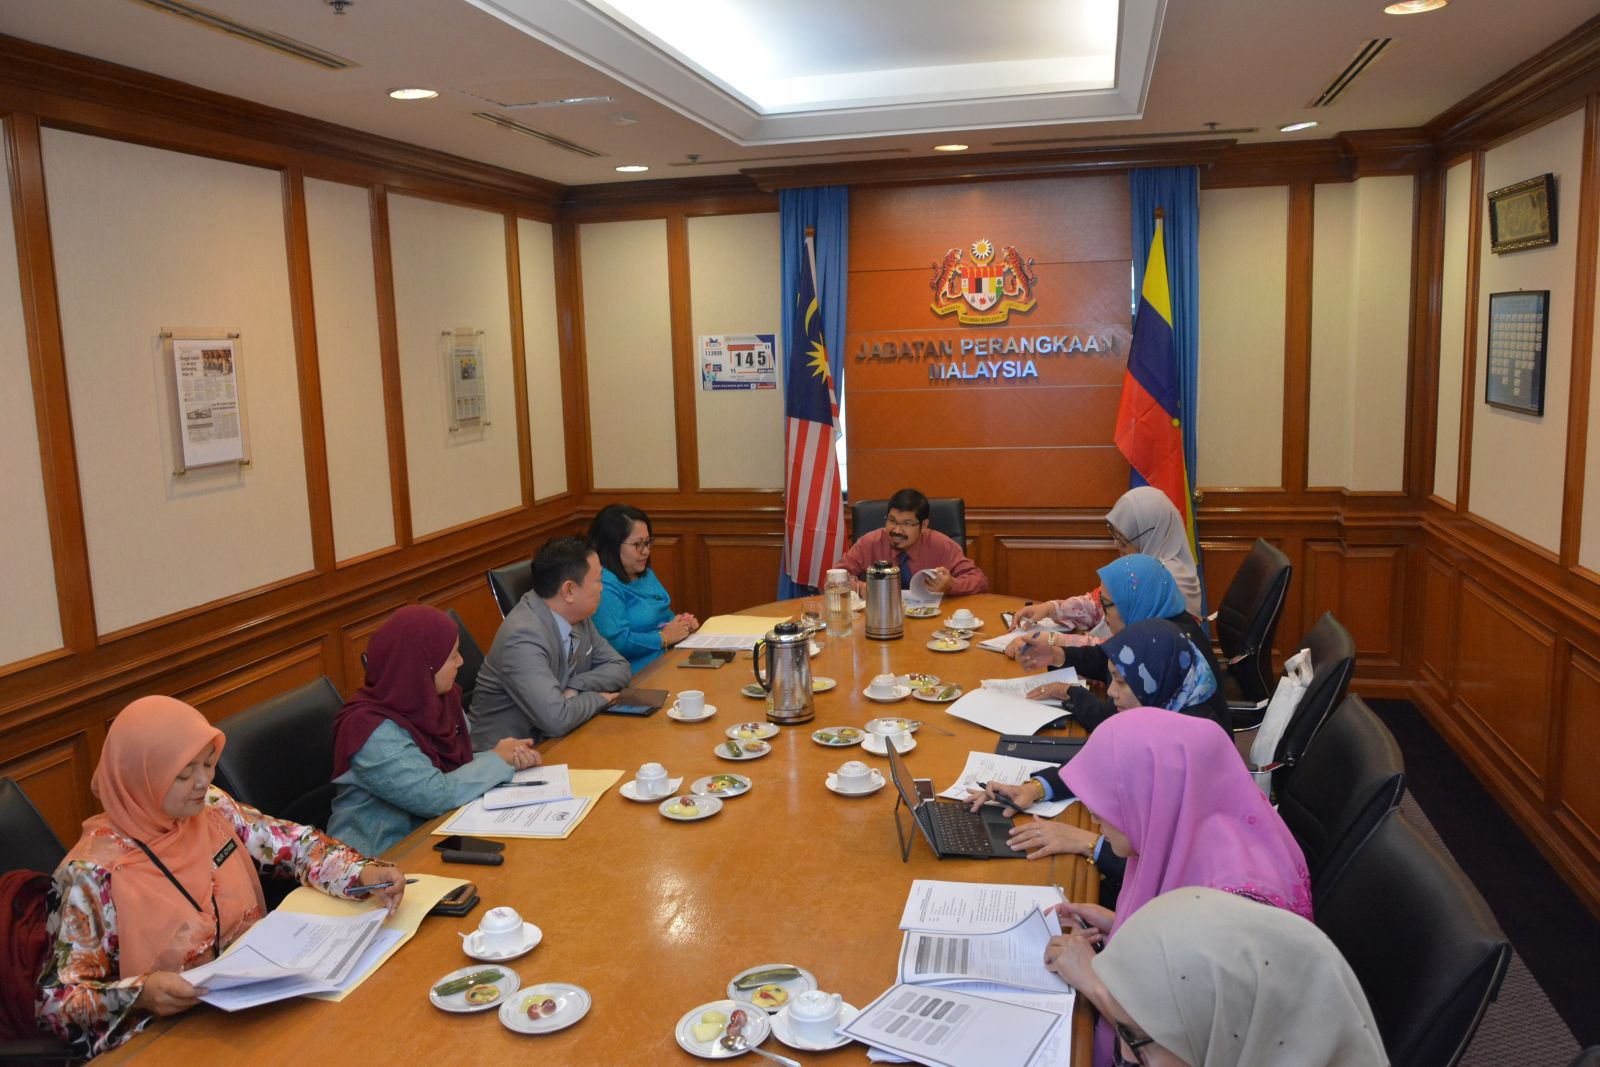 Courtesy Visit from Ministry of Communications and Multimedia Malaysia